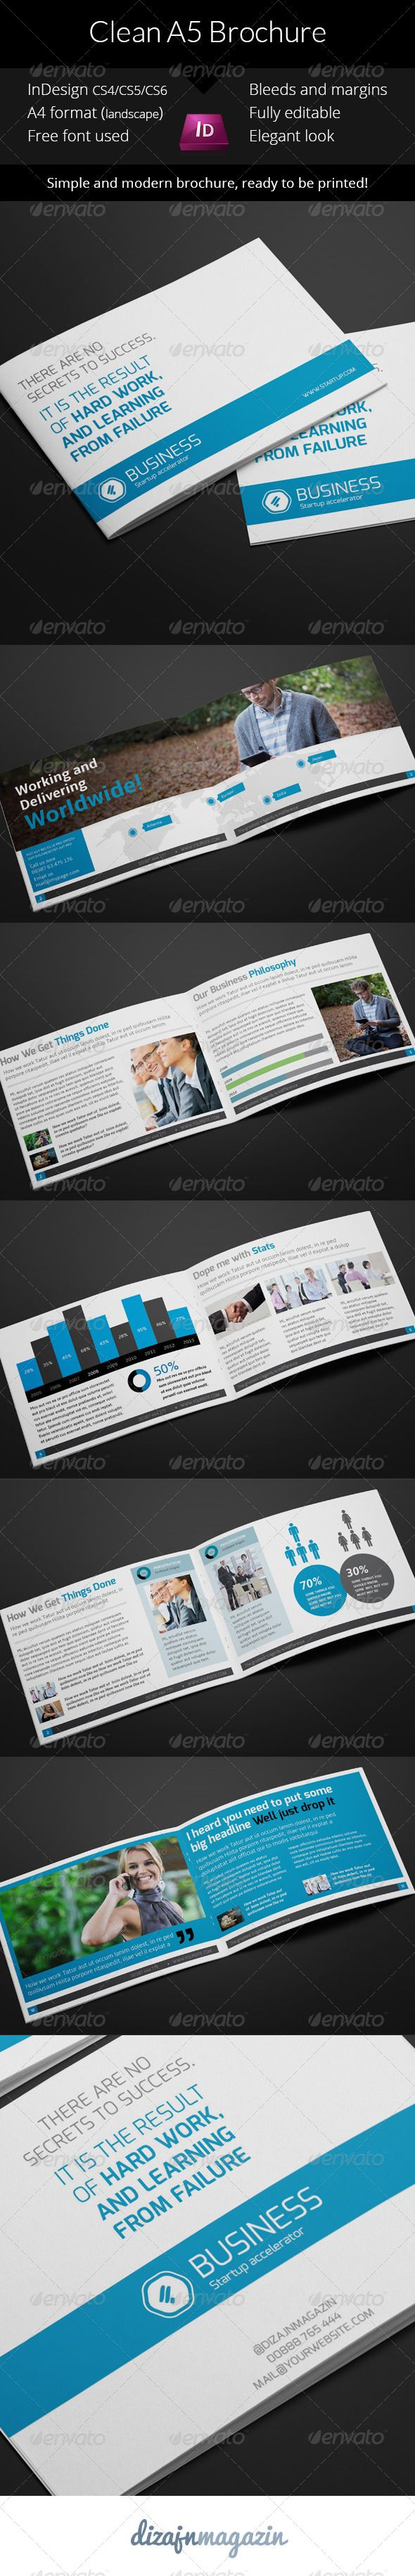 Clean Business A5 Brochure - InDesign Template | Indesign templates ...